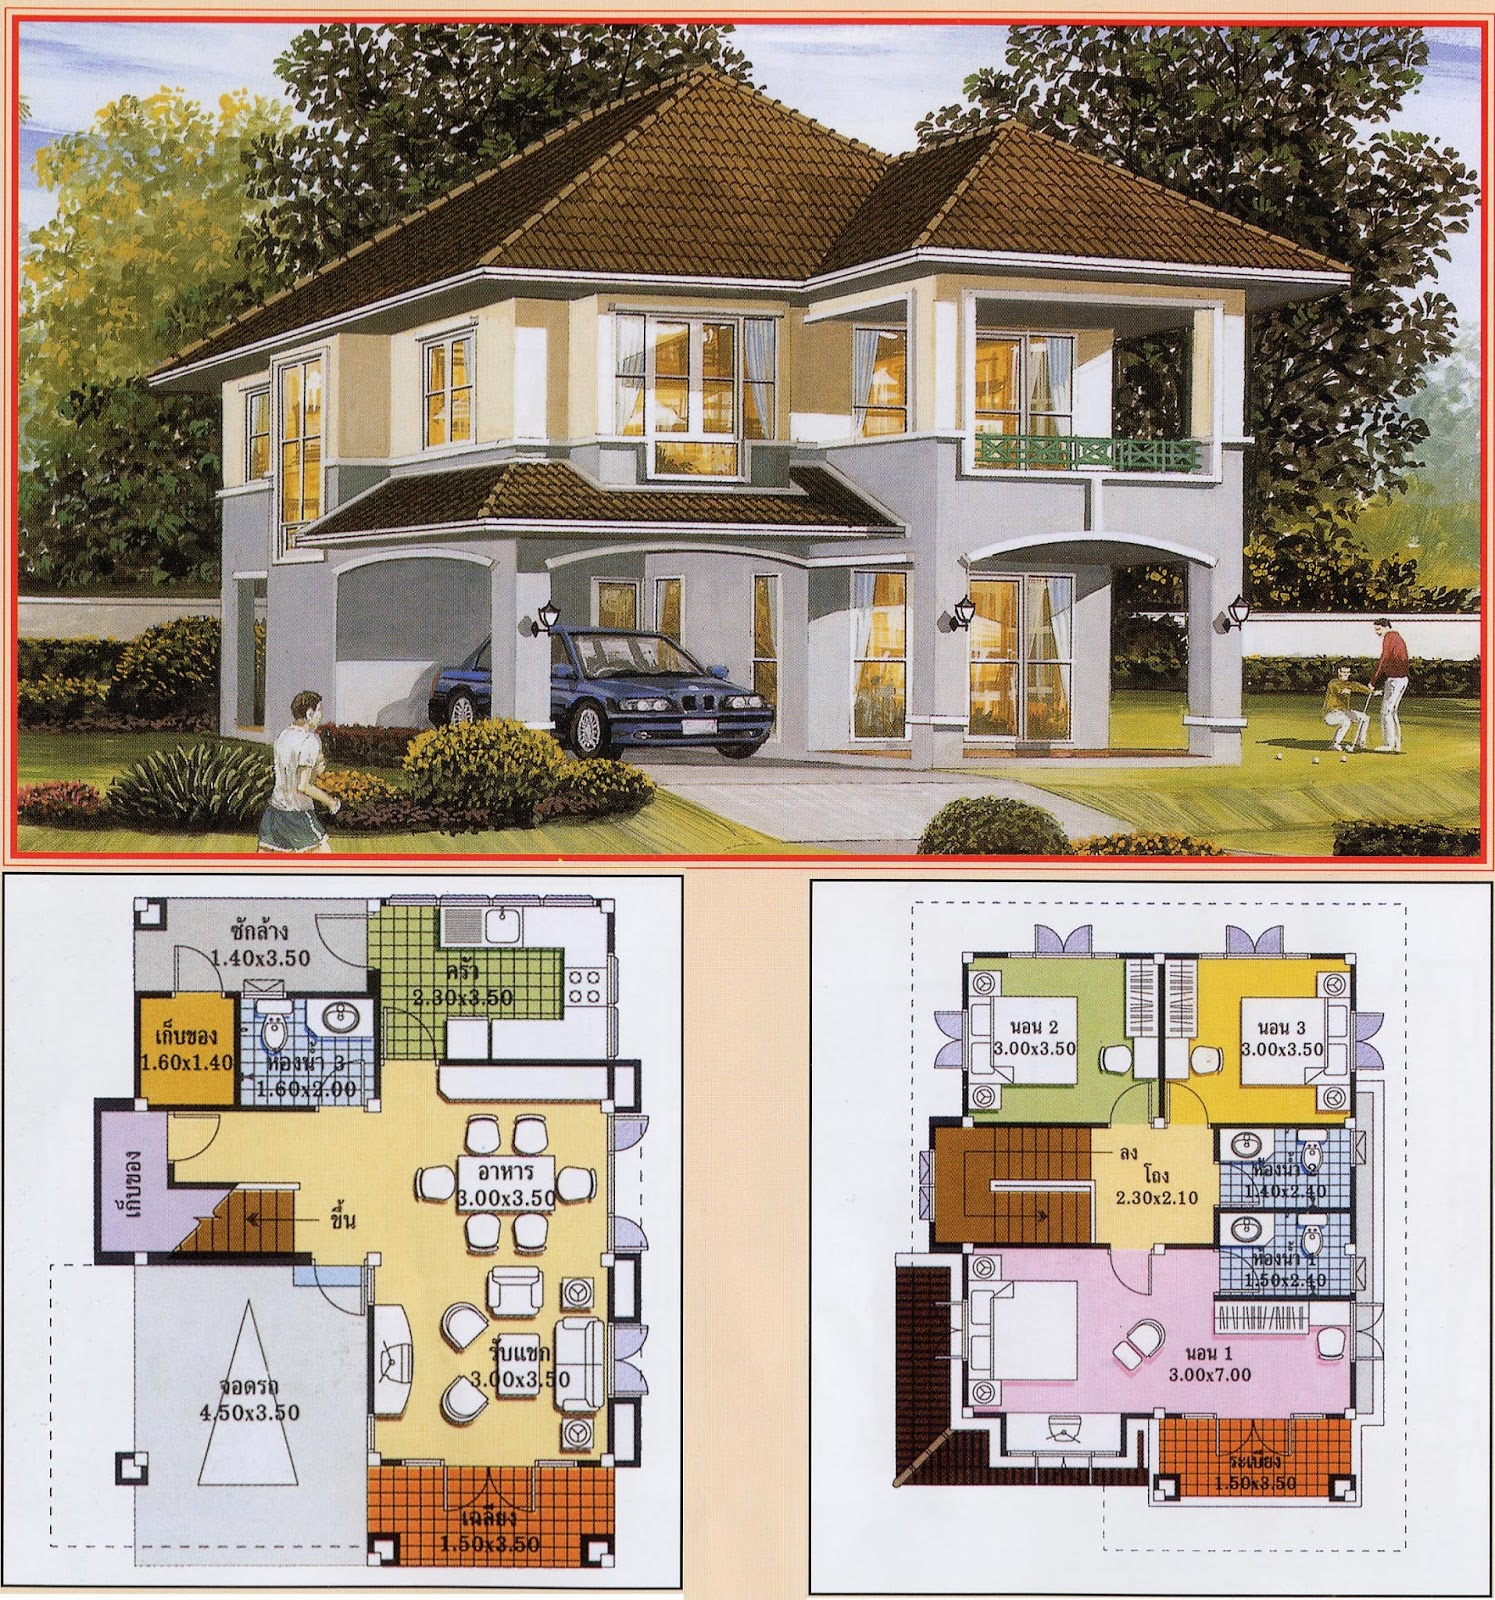 Architecture art khmer thai villa house plan for Villa architecture design plans